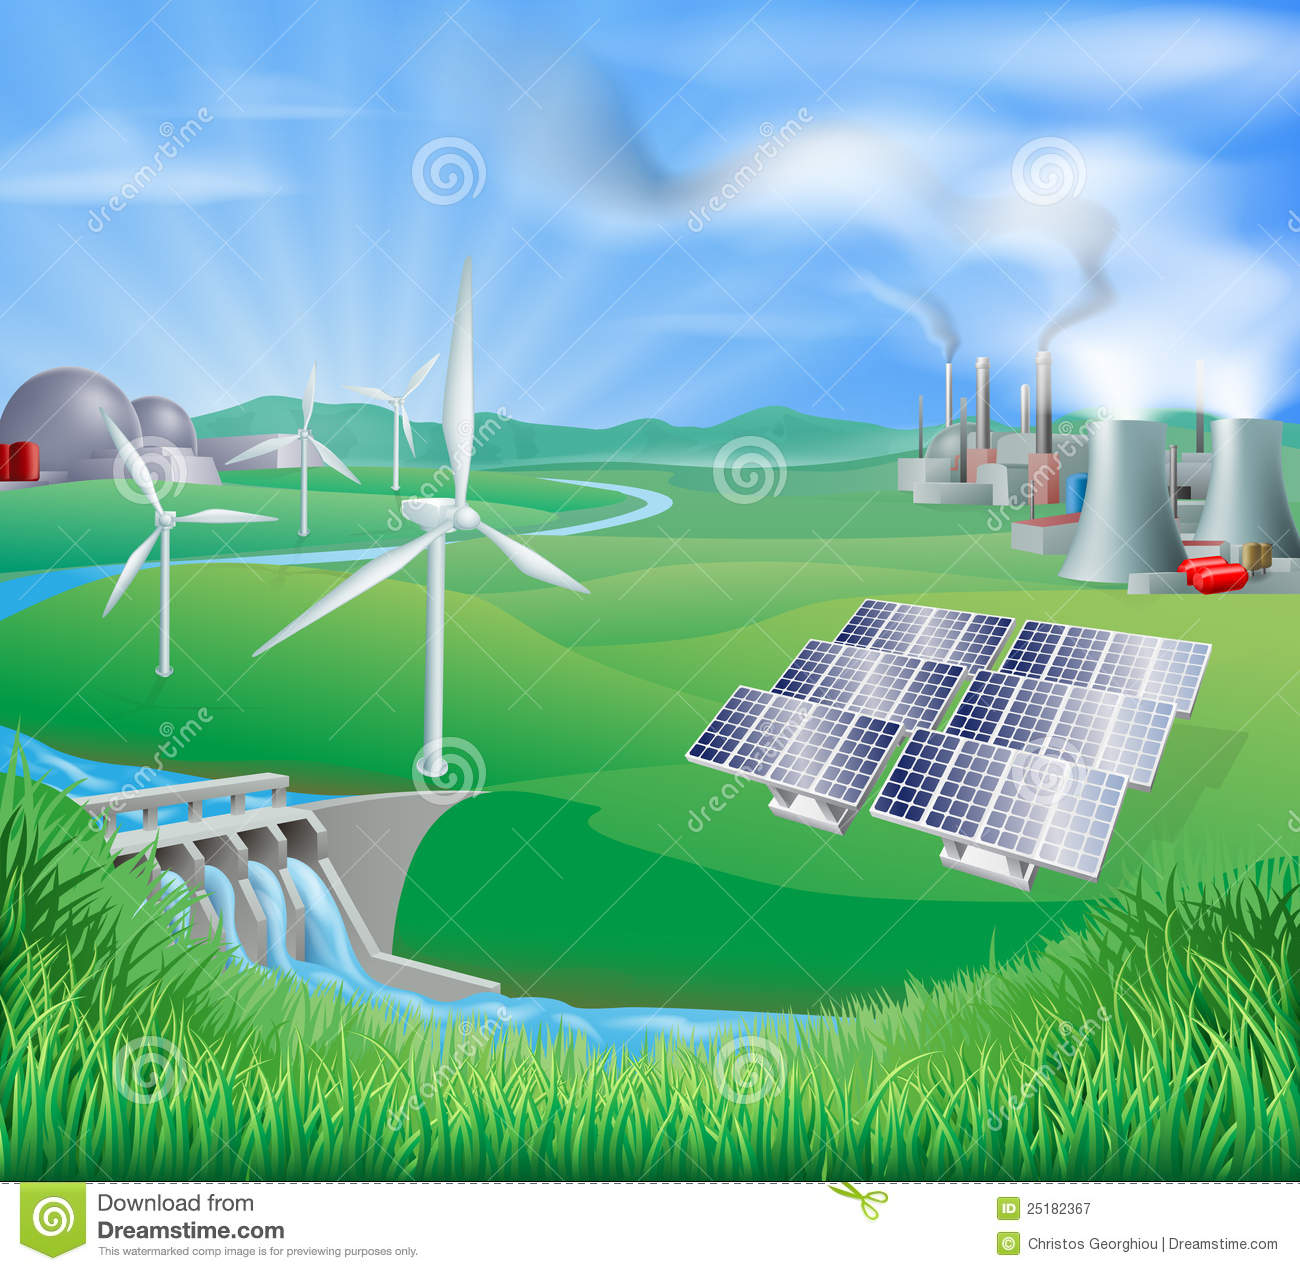 fuel or coal, and renewable energy or sustainable energy sources ...